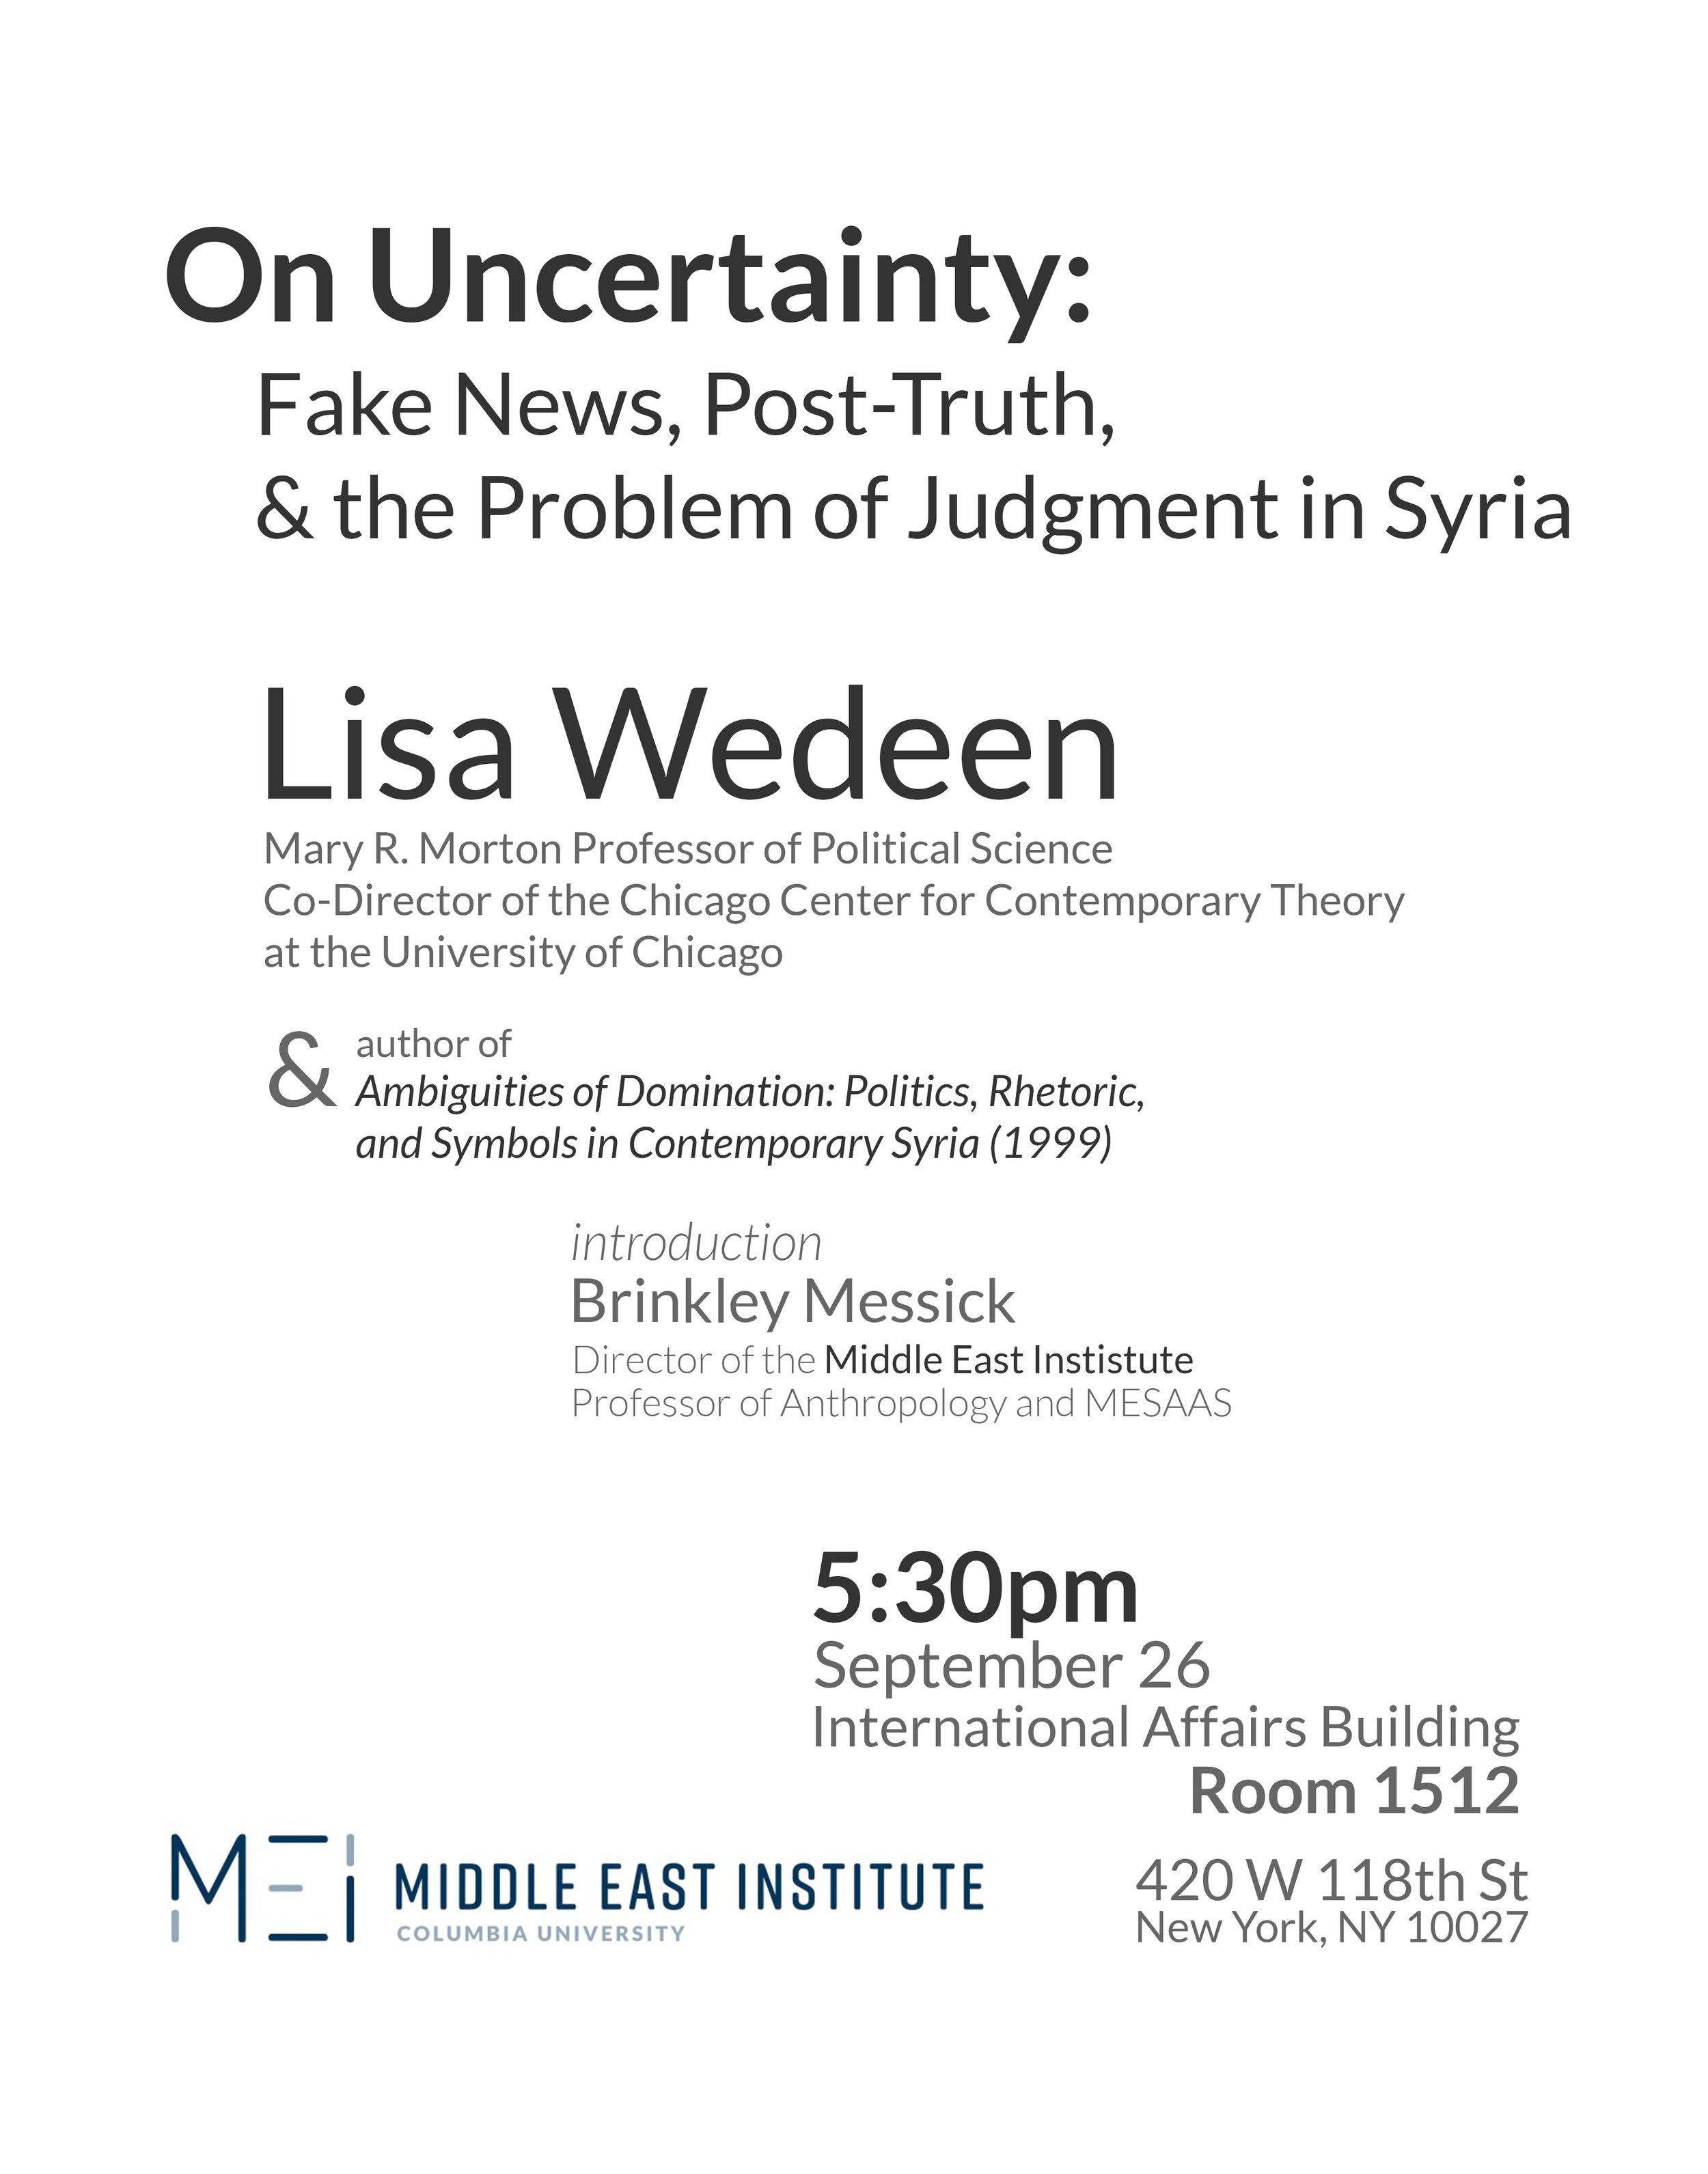 on_uncertainty_lisa_wedeen_2.jpg